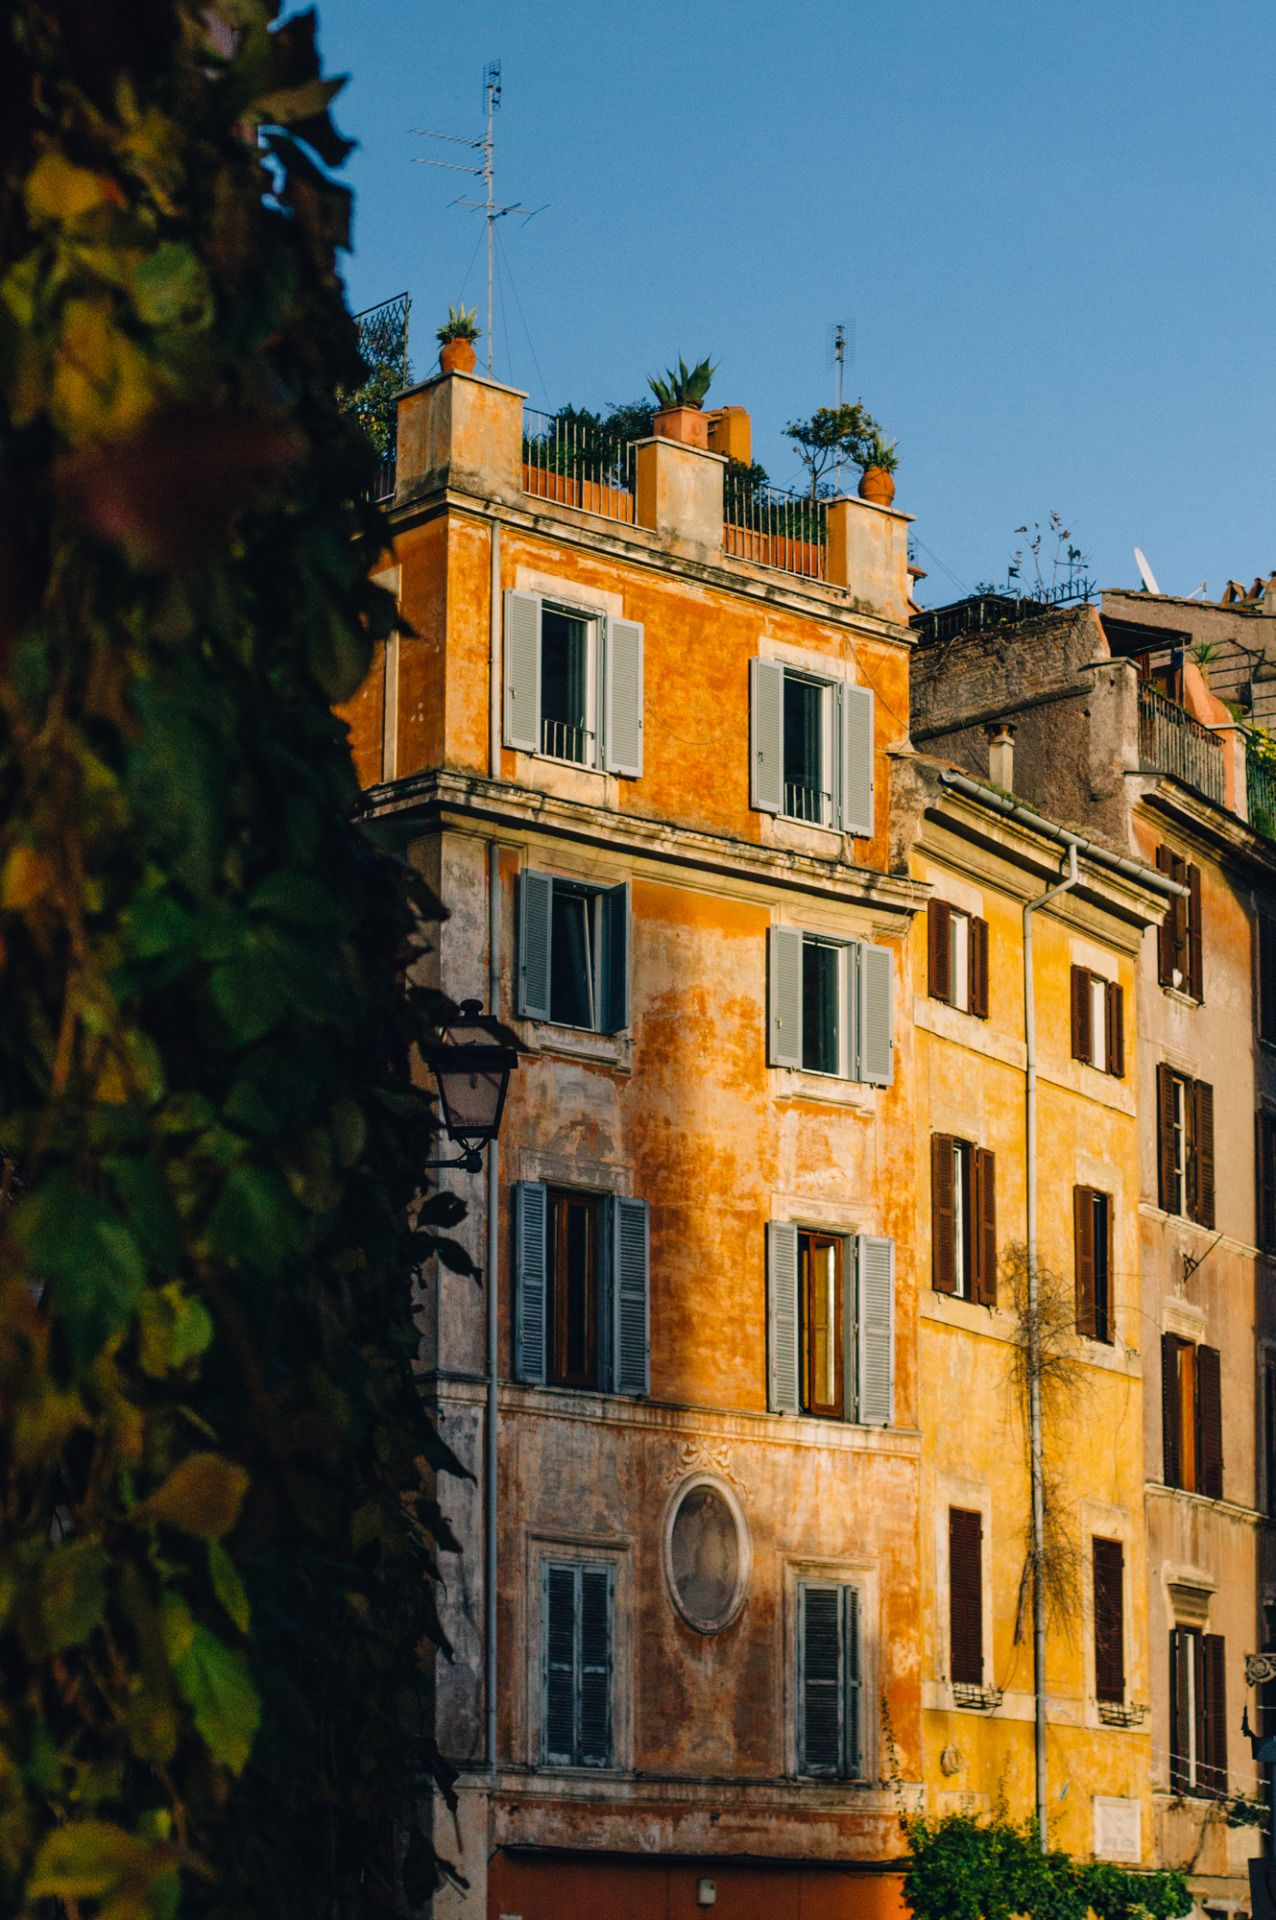 Golden rome dolce vita in rome italy pinterest for Maison italienne architecture